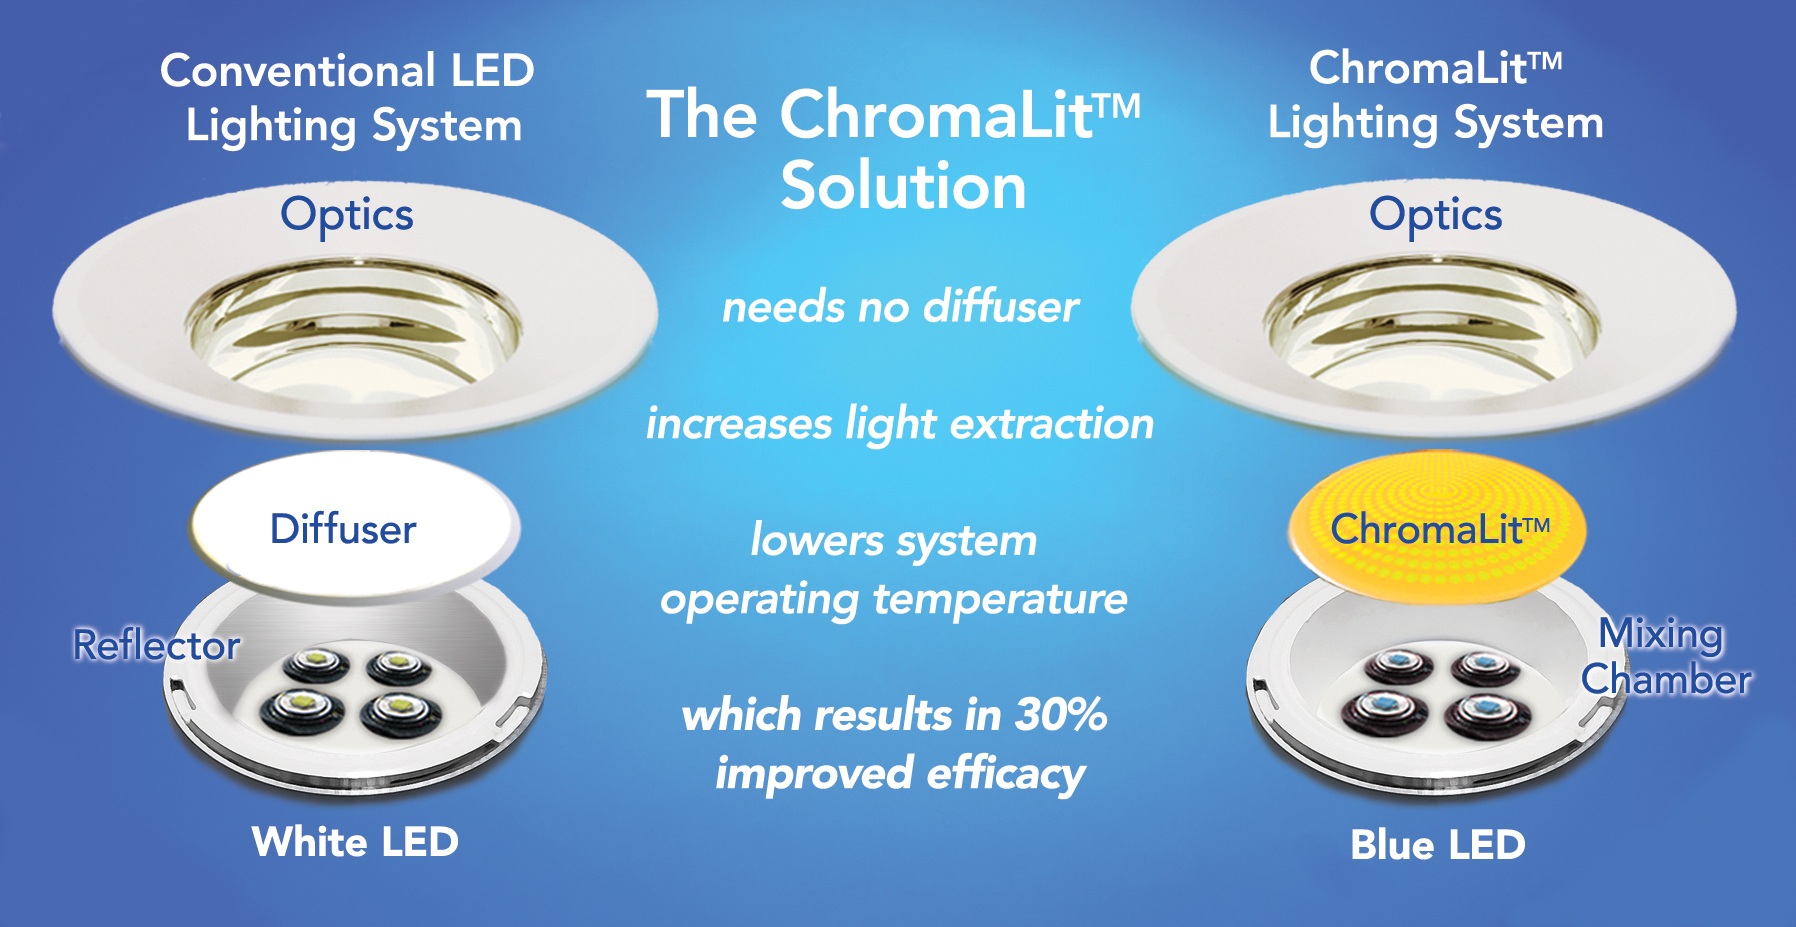 The ChromaLit LED Lighting System